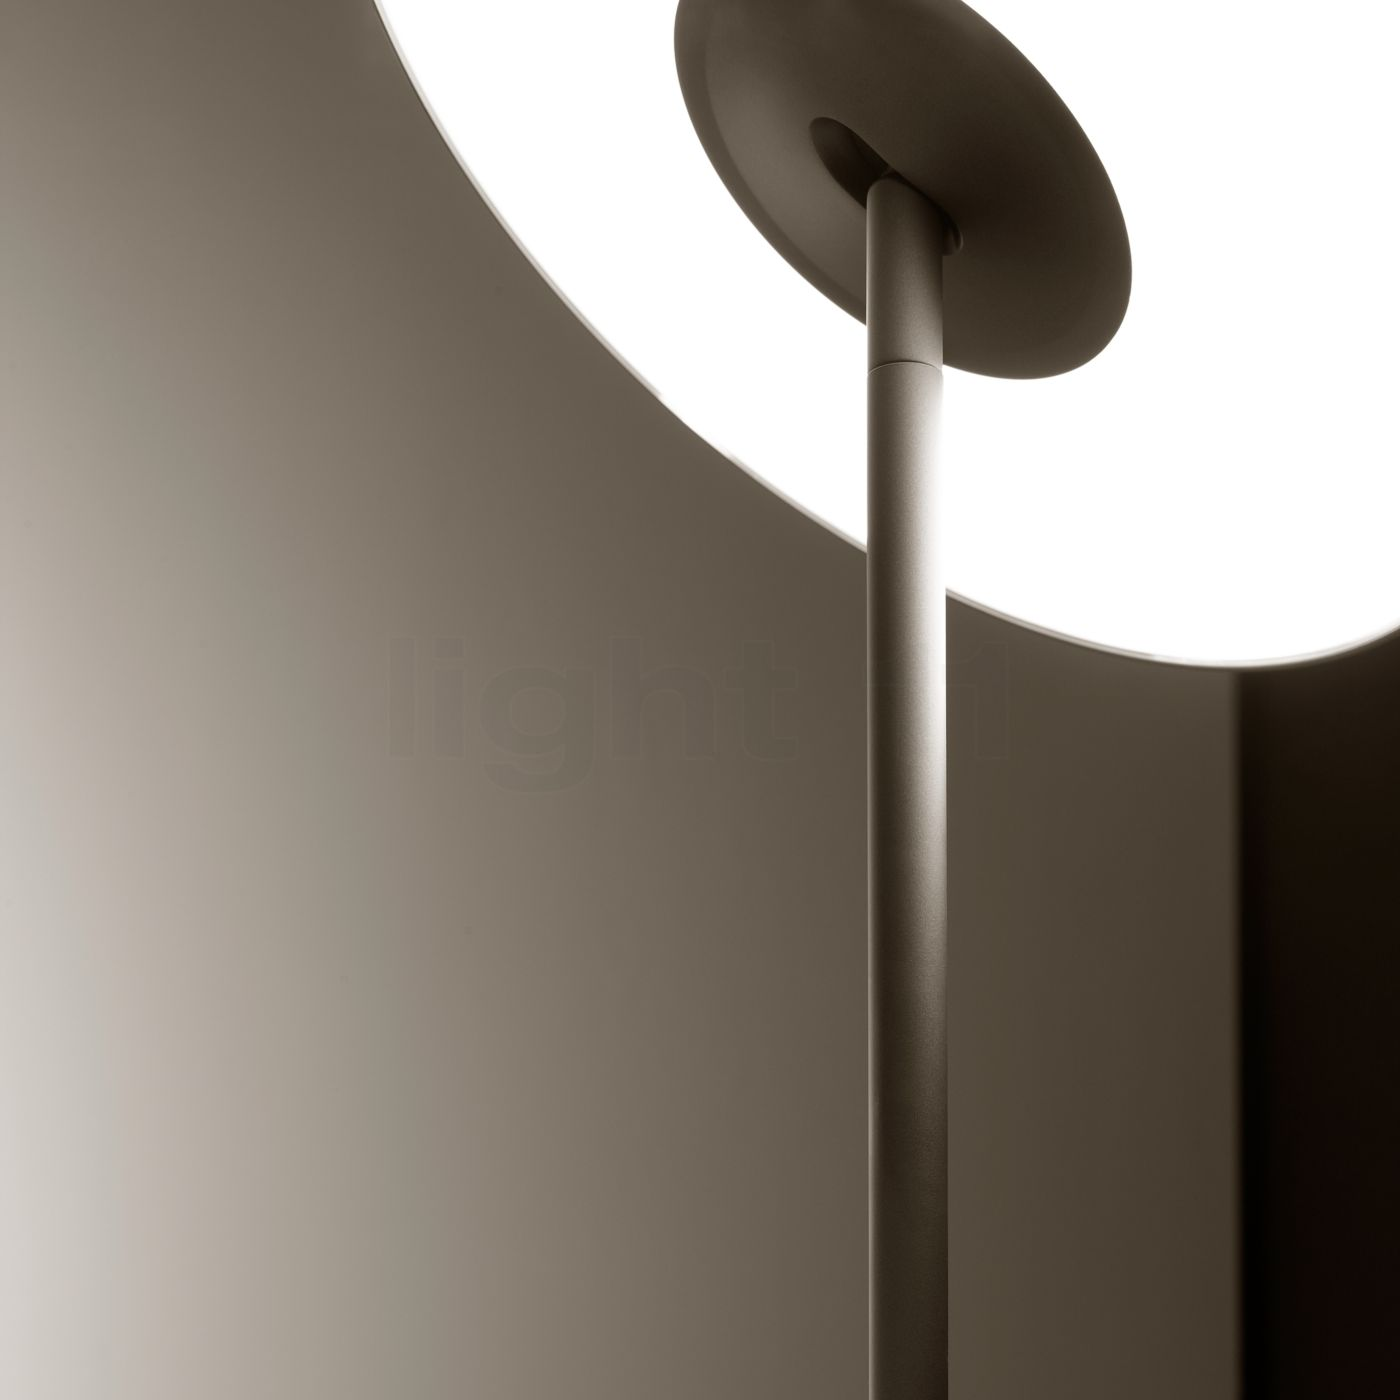 Buy Pablo Designs Circa Table Lamp Led At Light11 Eu